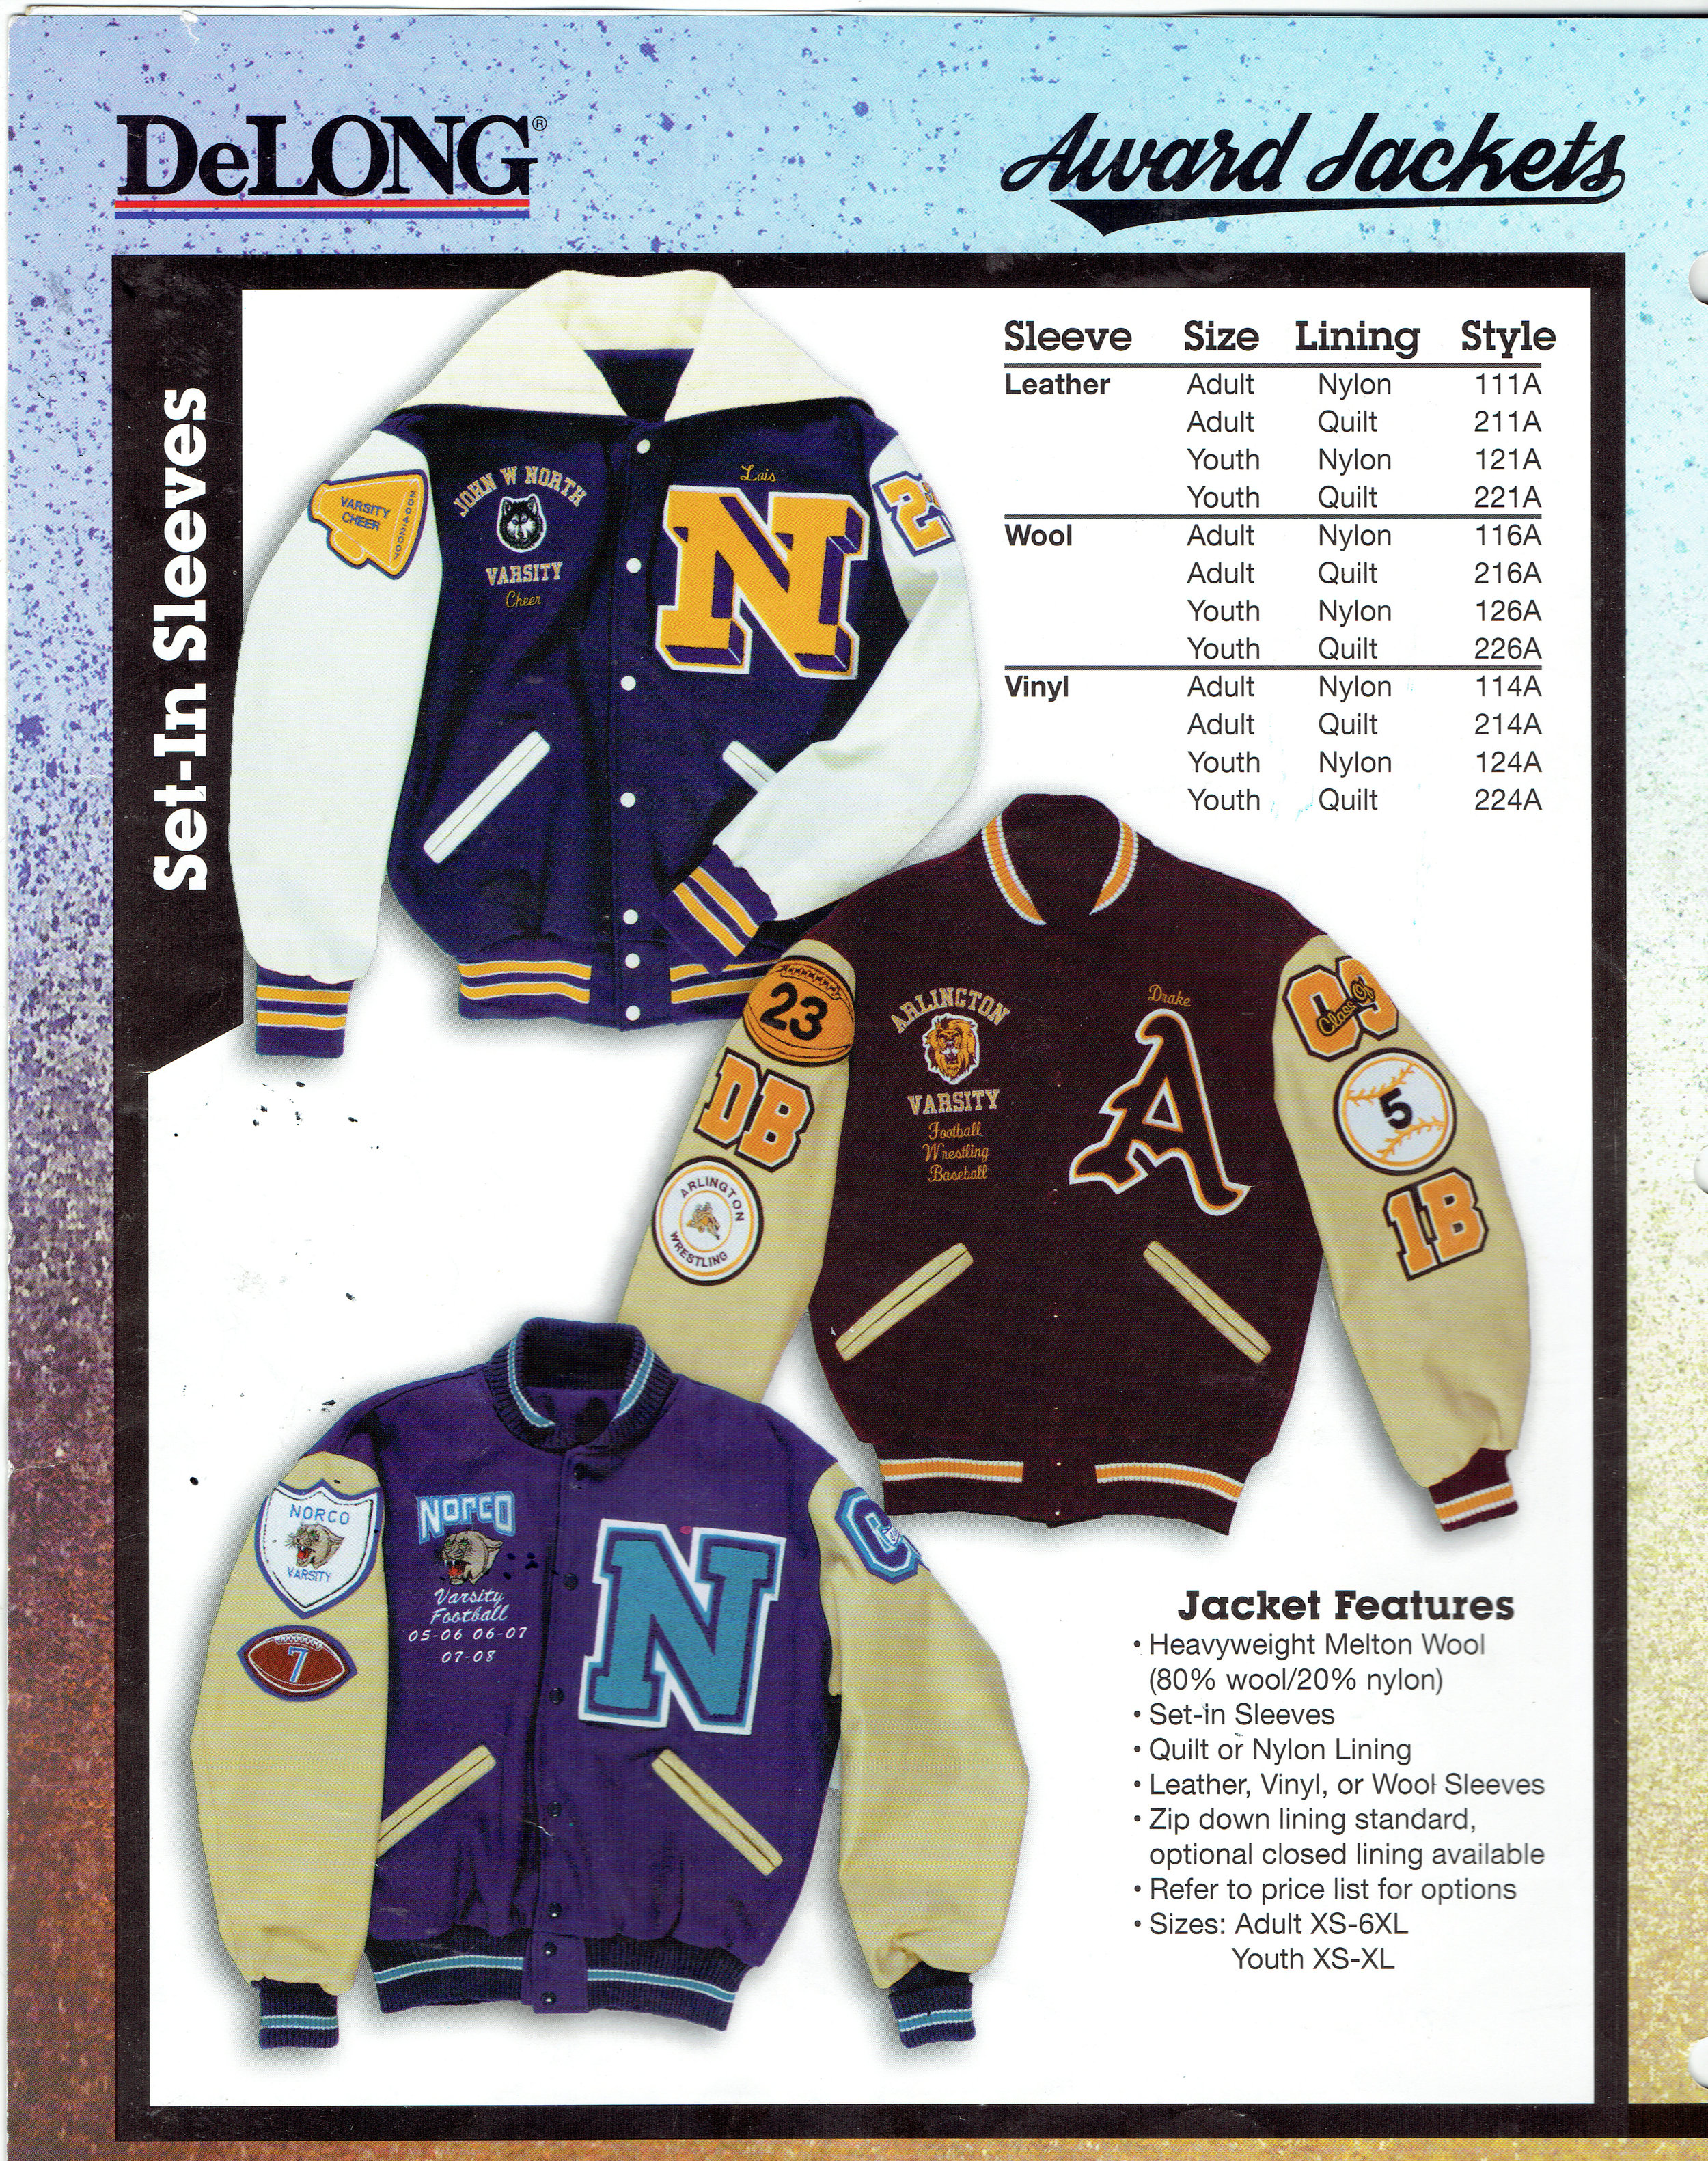 - Custom Award JacketsChenille Lettering & EmblemsPlease call for Quotes onTeam Discounts(504) 837 8420 Email: pennant 700@yahoo.com